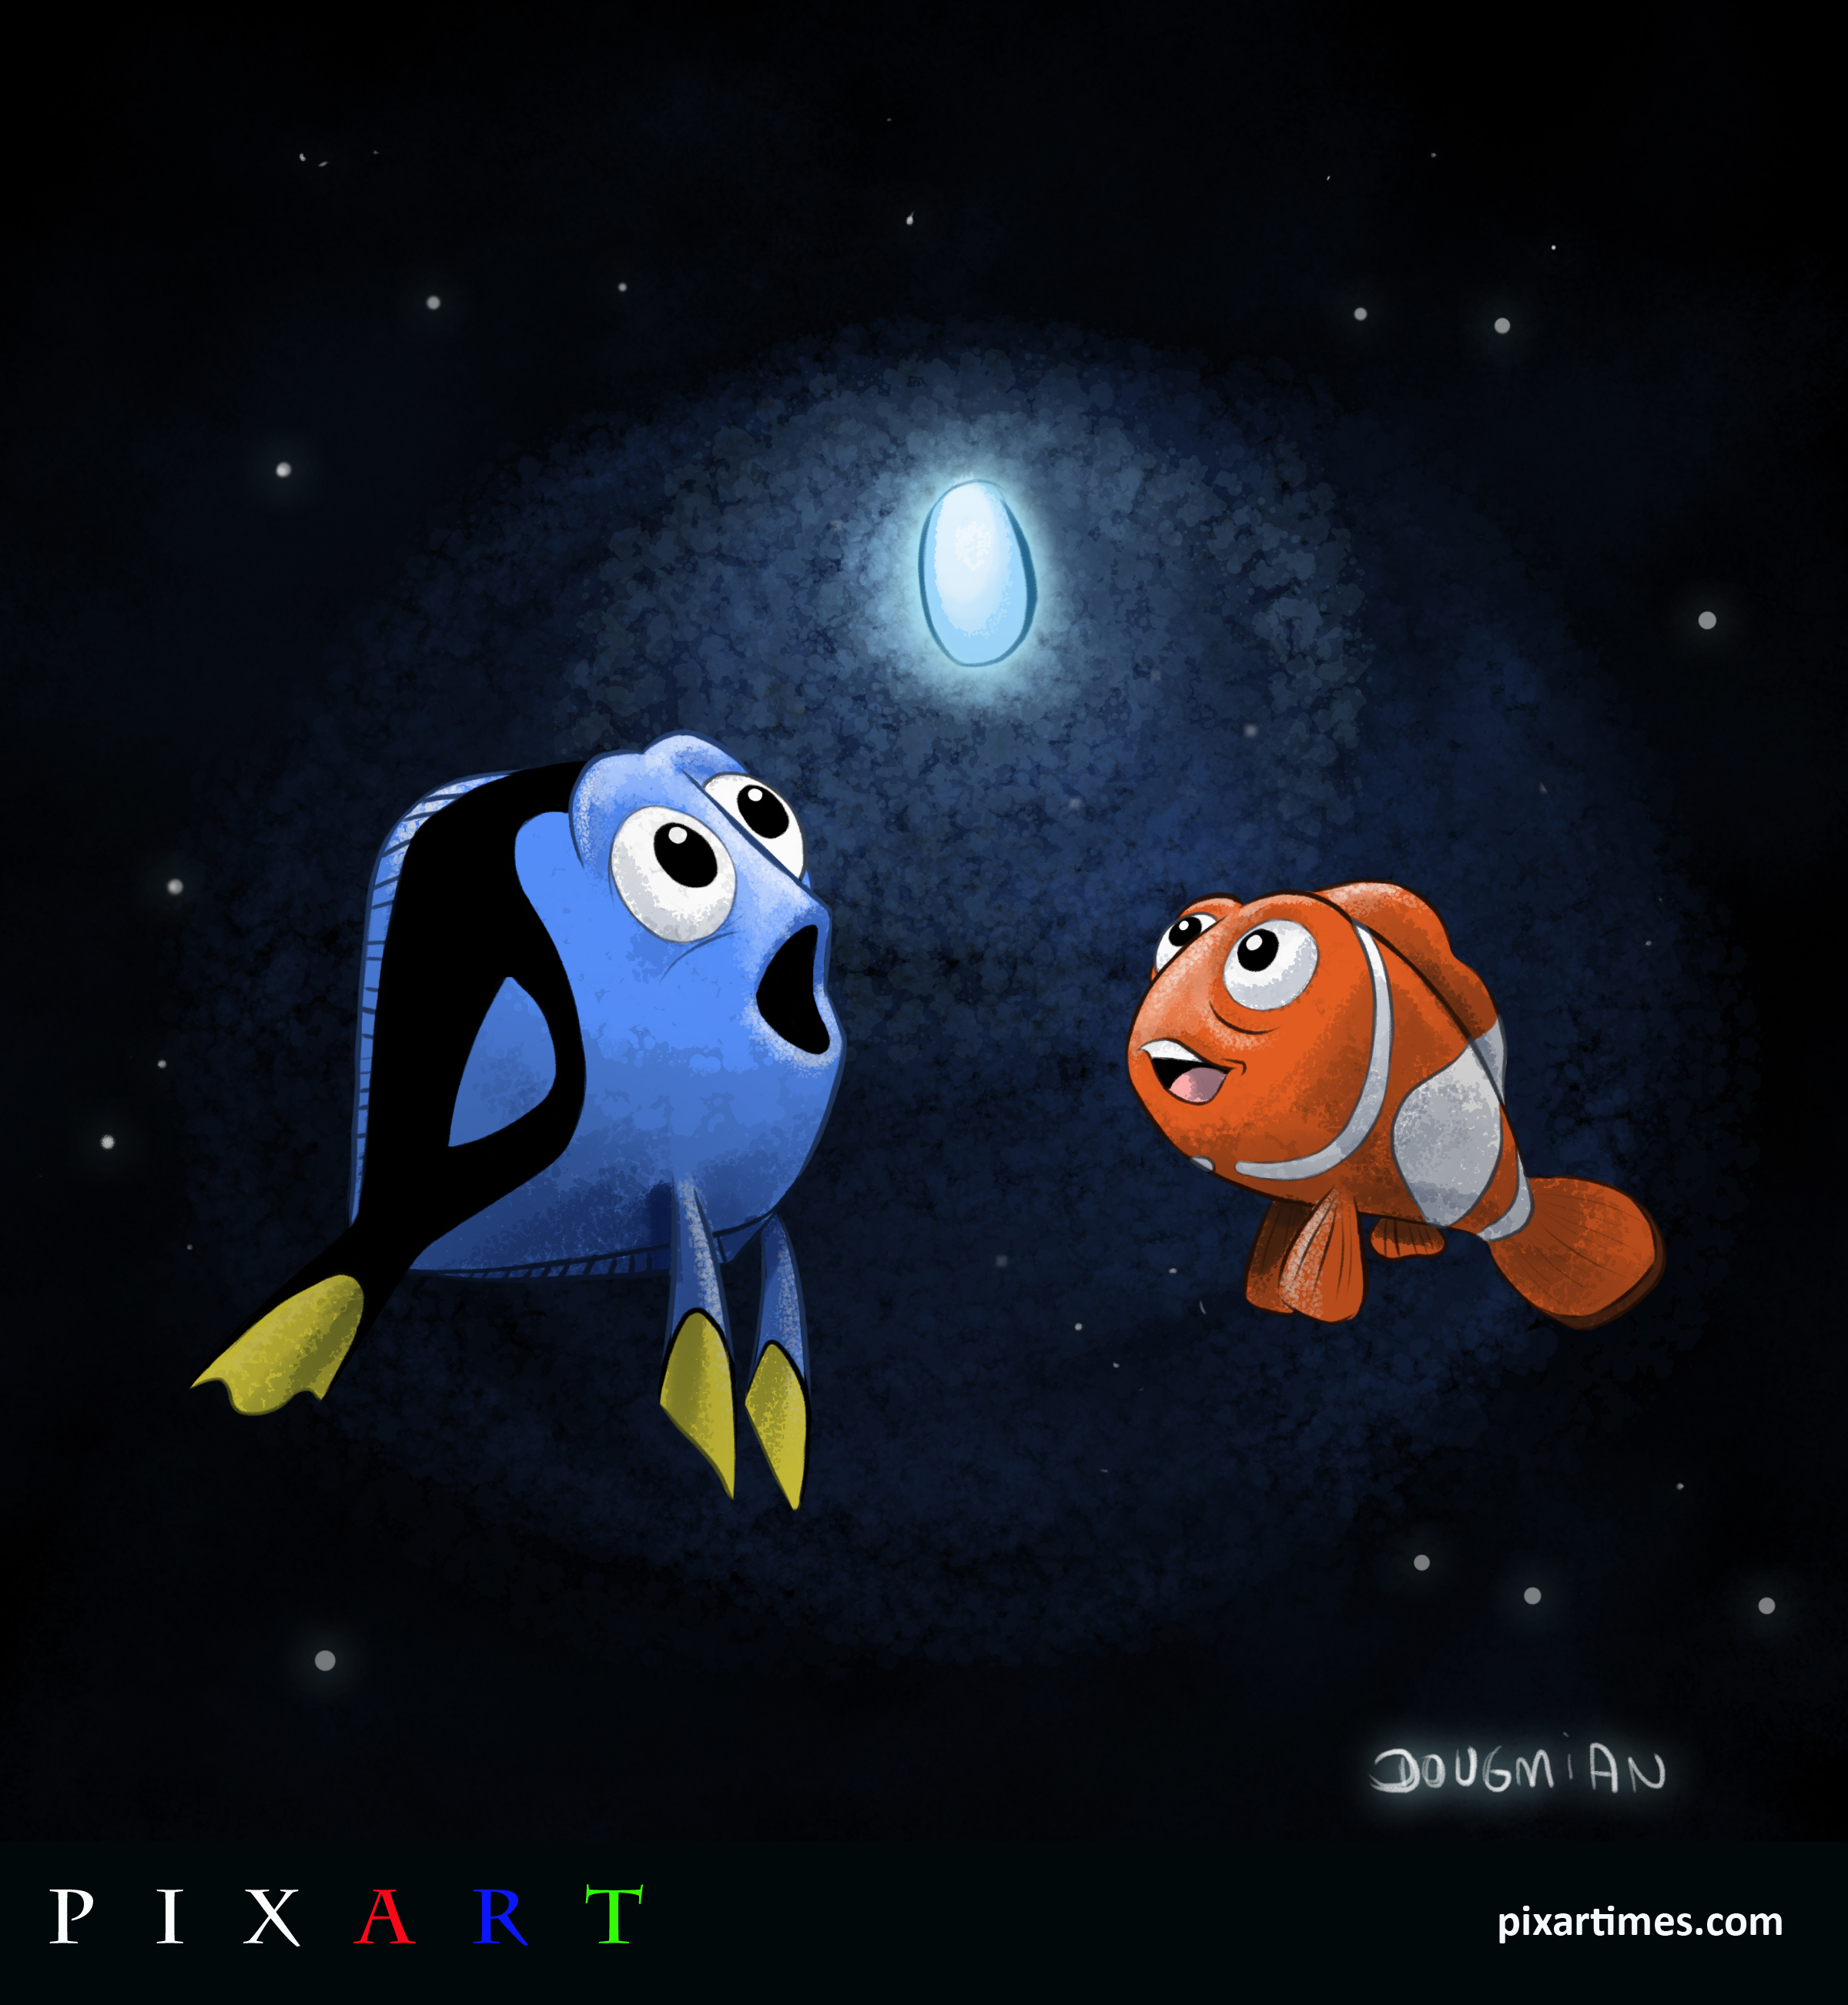 PixArt: May 2012 Feature I – Dory, Marlin, and the Light